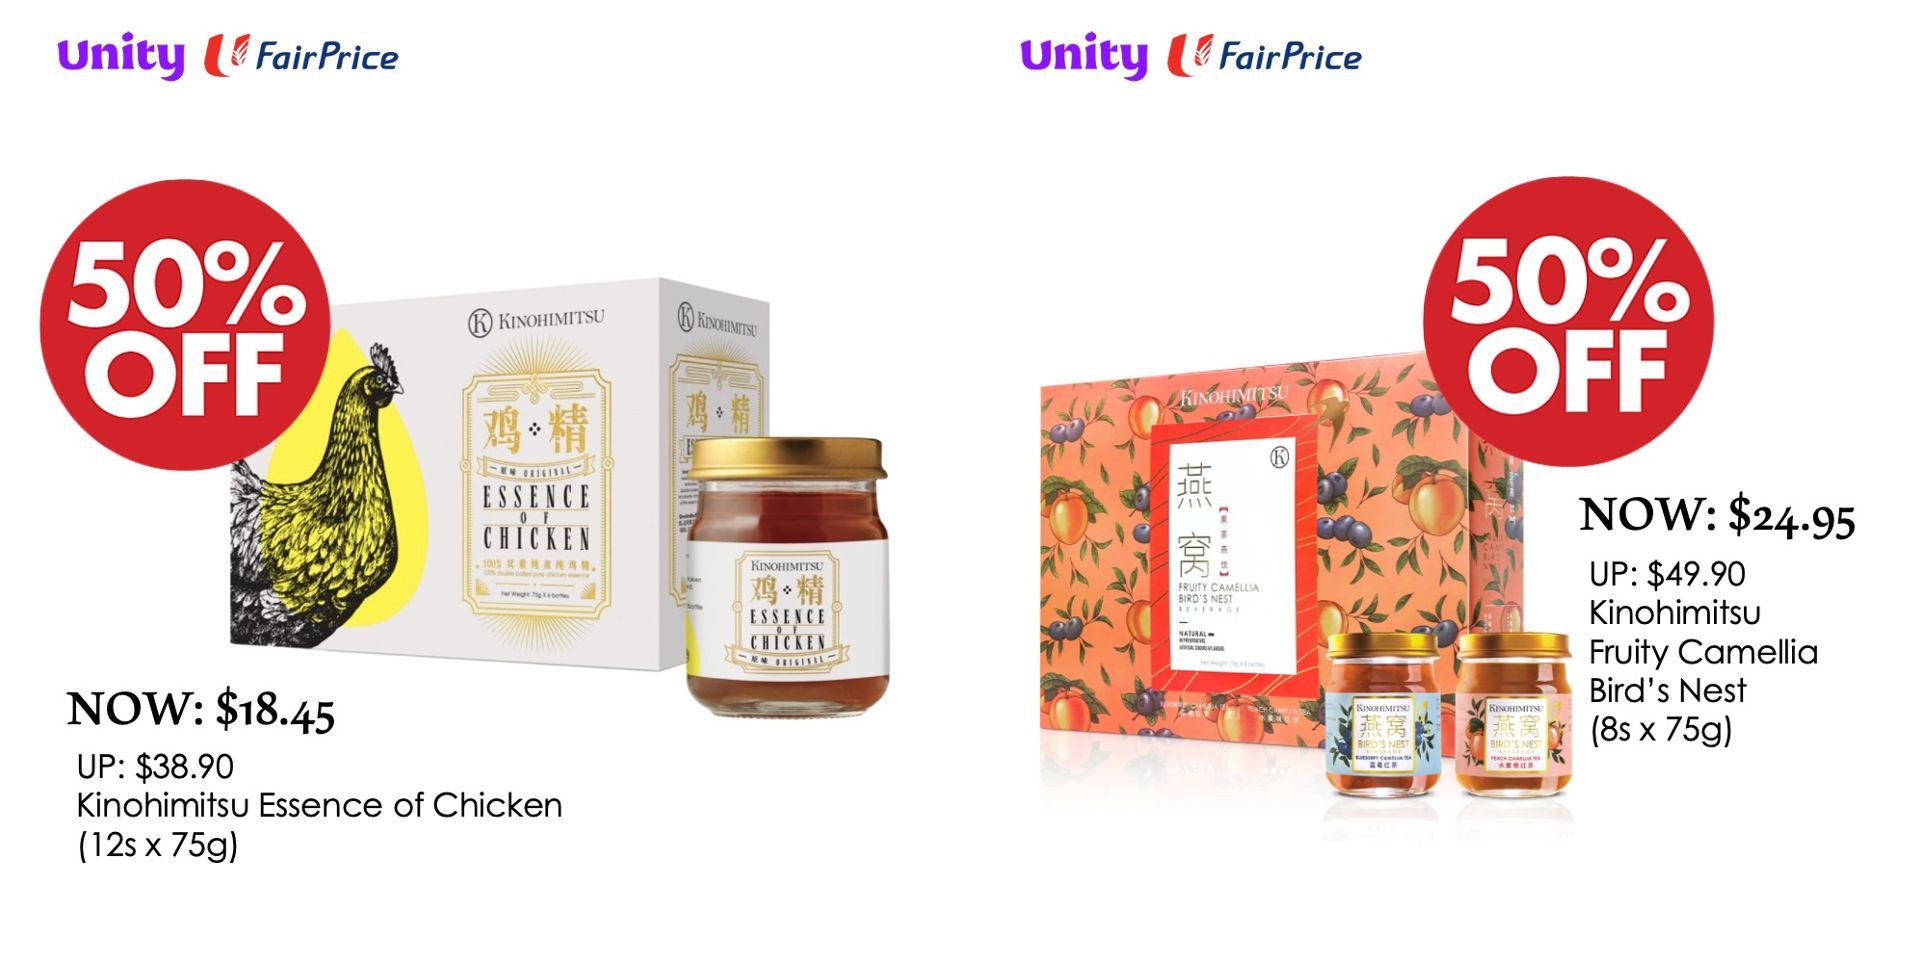 14 – 27 OCT ONLY: Special 50% OFF essential beauty & wellness products @ Unity!